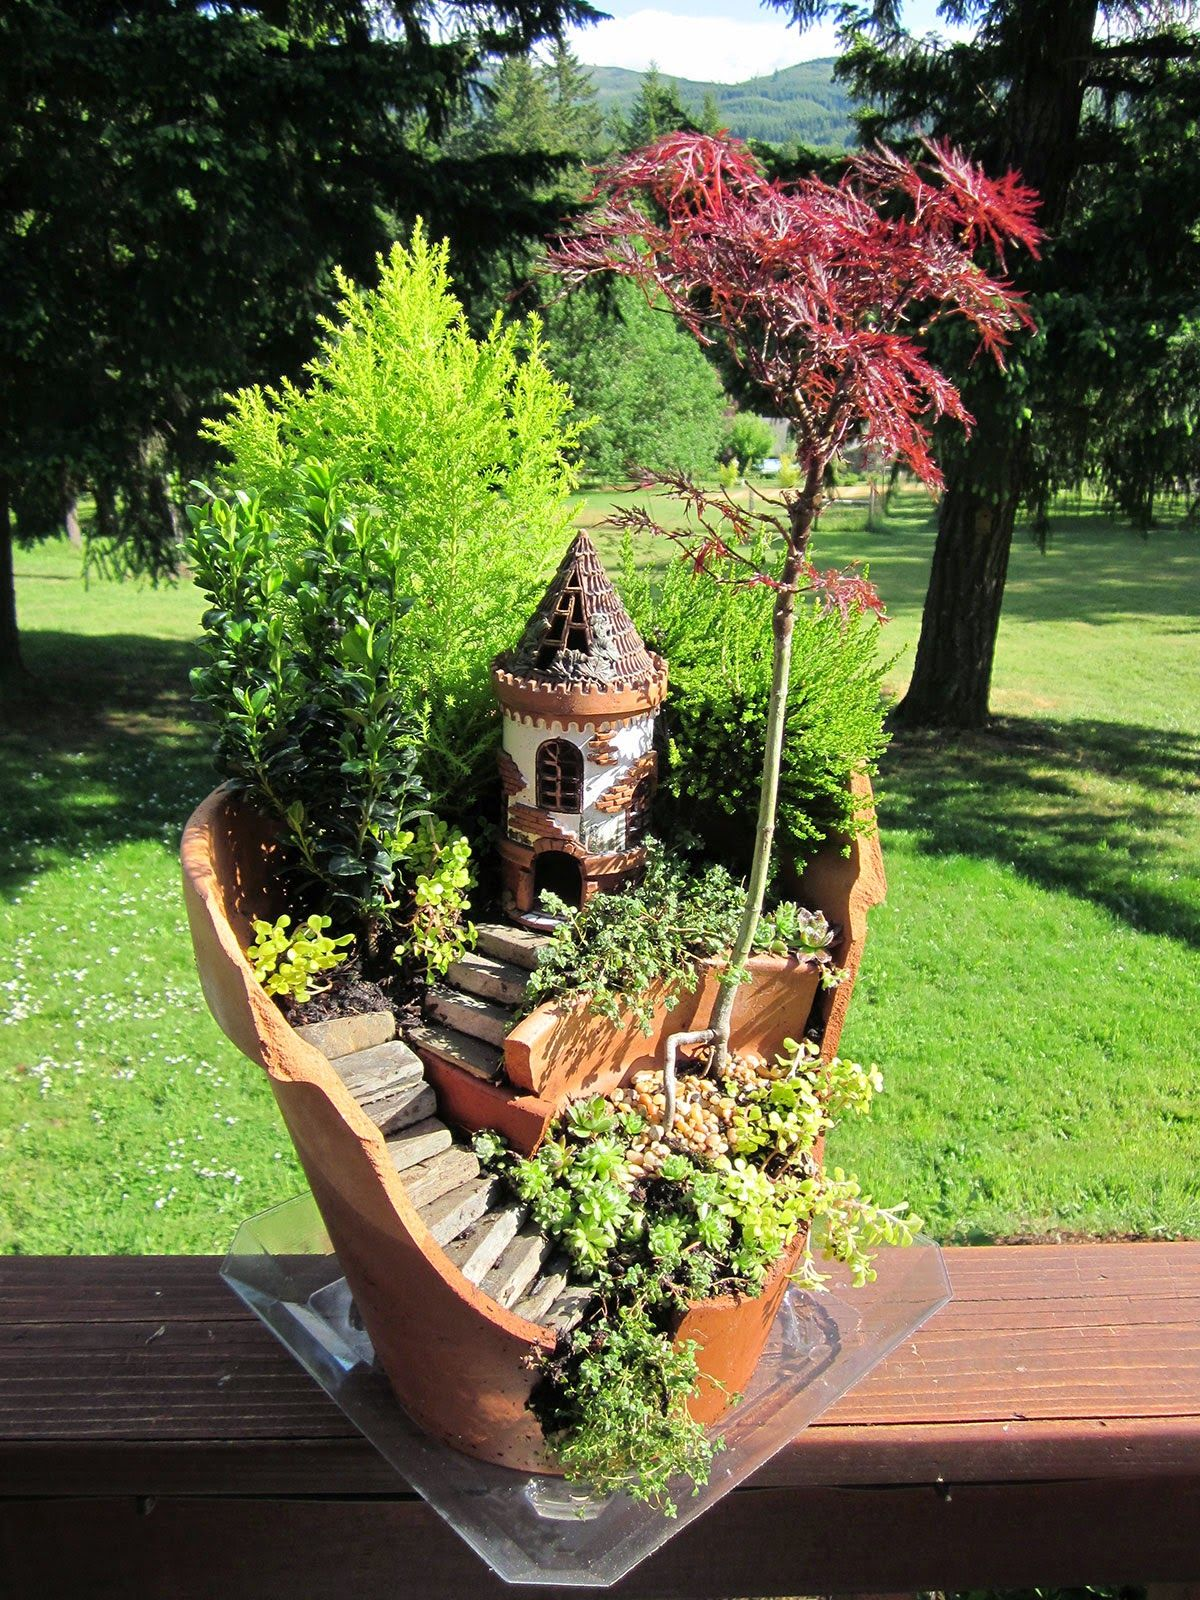 Take Your Pick! The Top 50 Mini-Fairy Garden Design Ideas | Castles ...